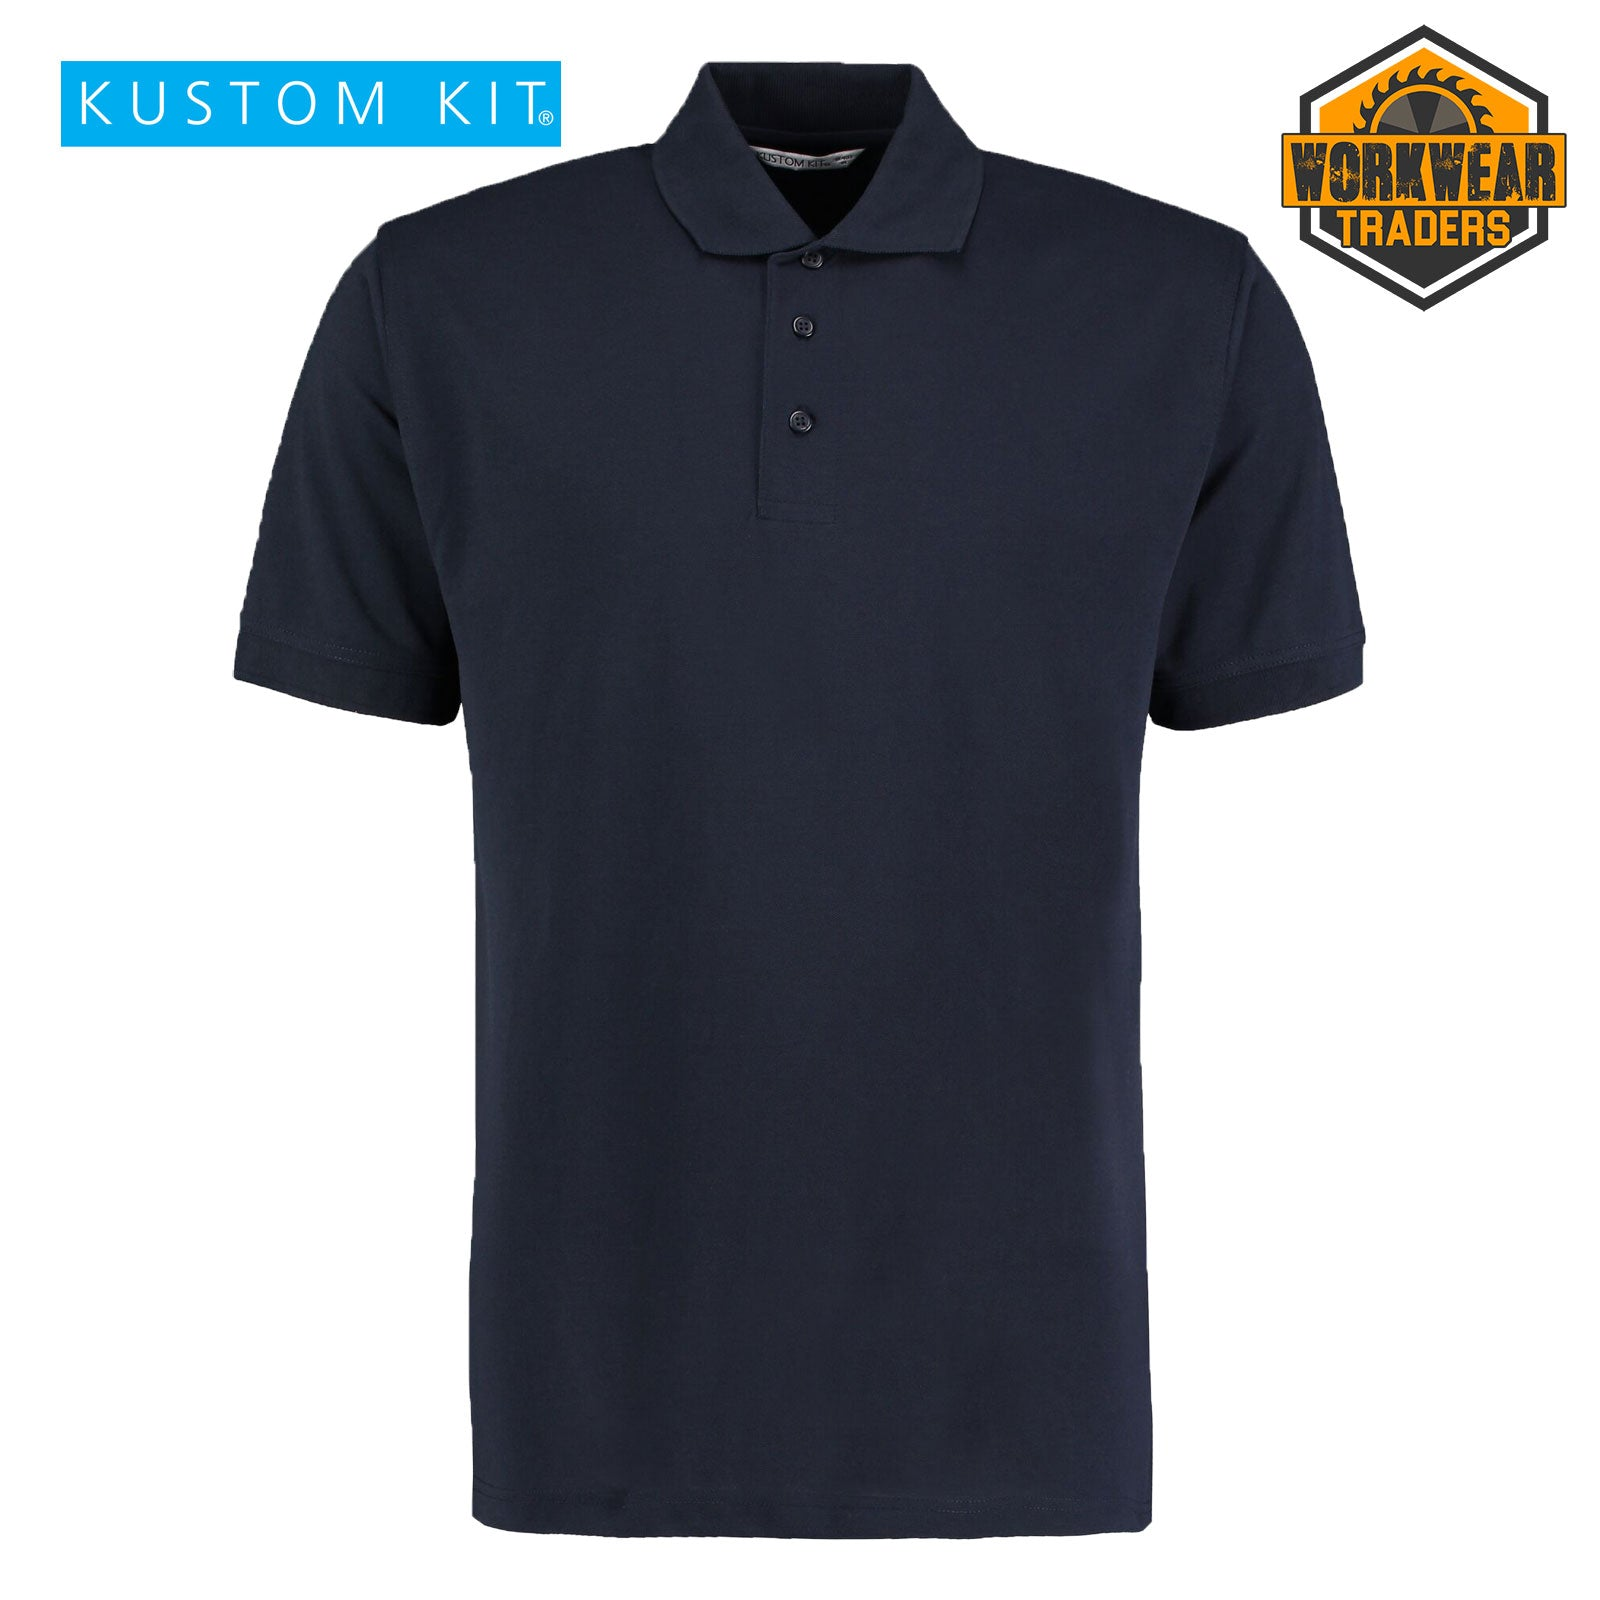 Kustom Kit Klassic Polo Shirt with Superwash® 60°C